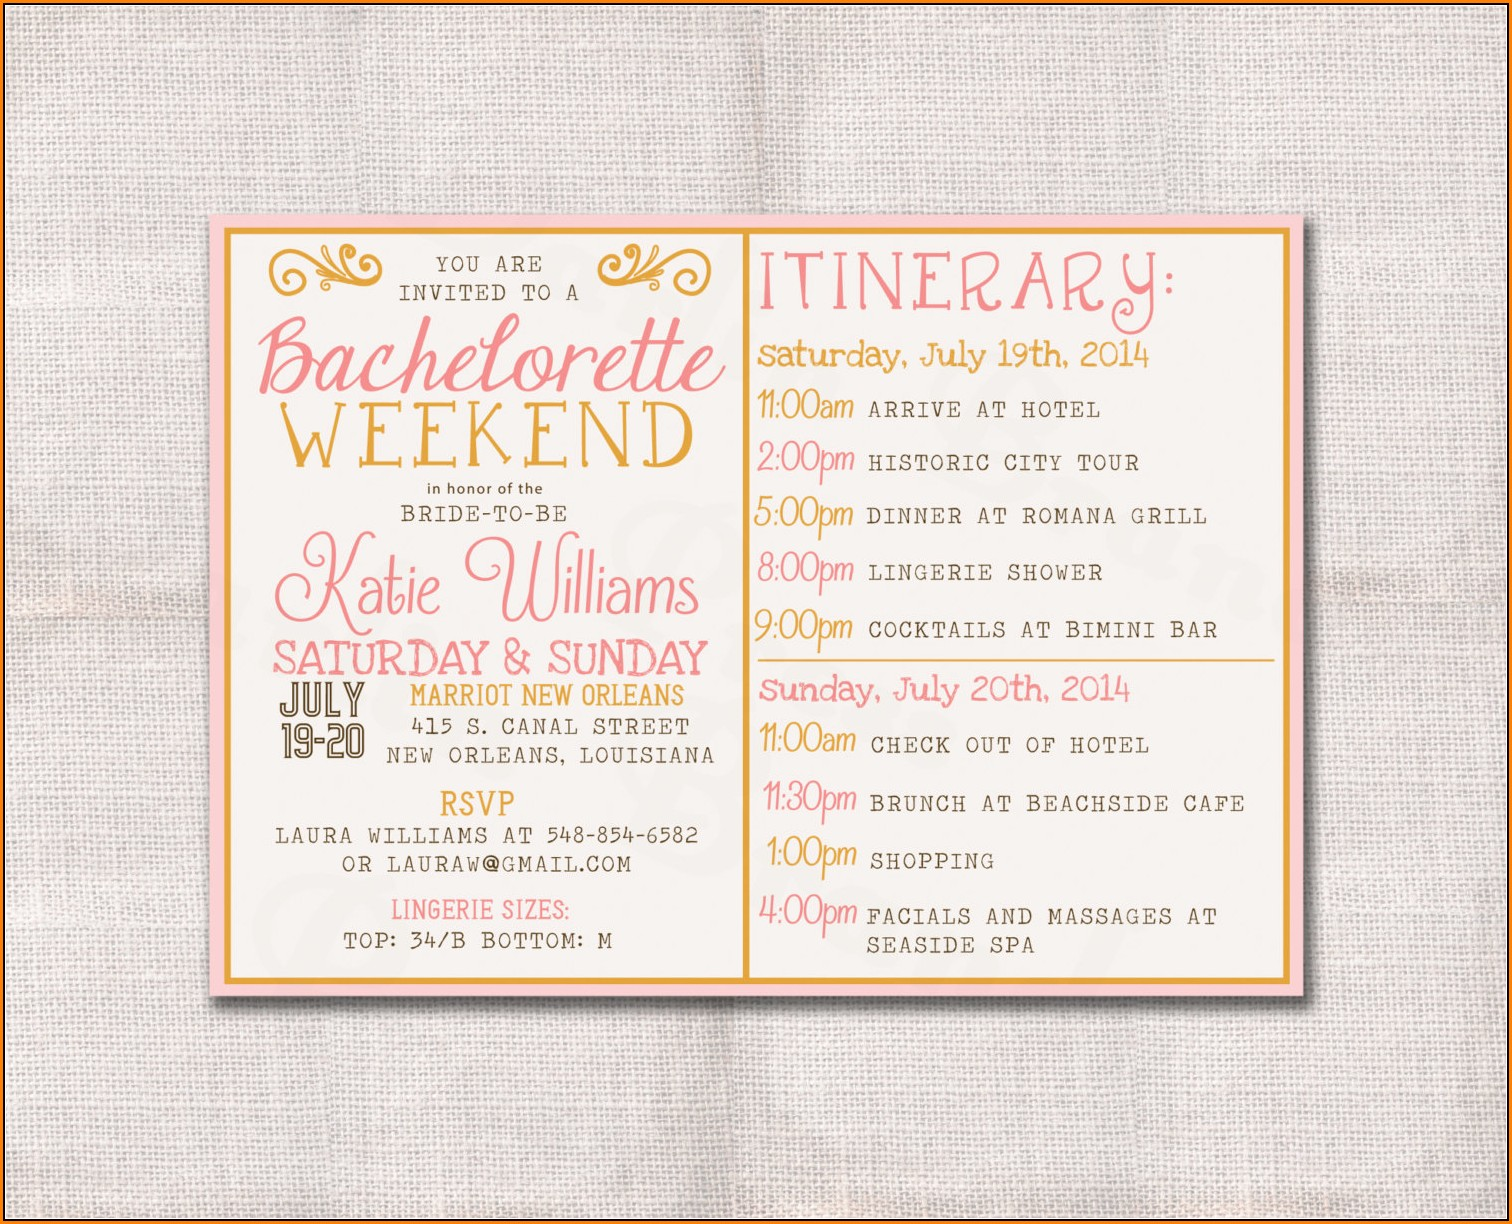 Bachelorette Weekend Itinerary Template Free